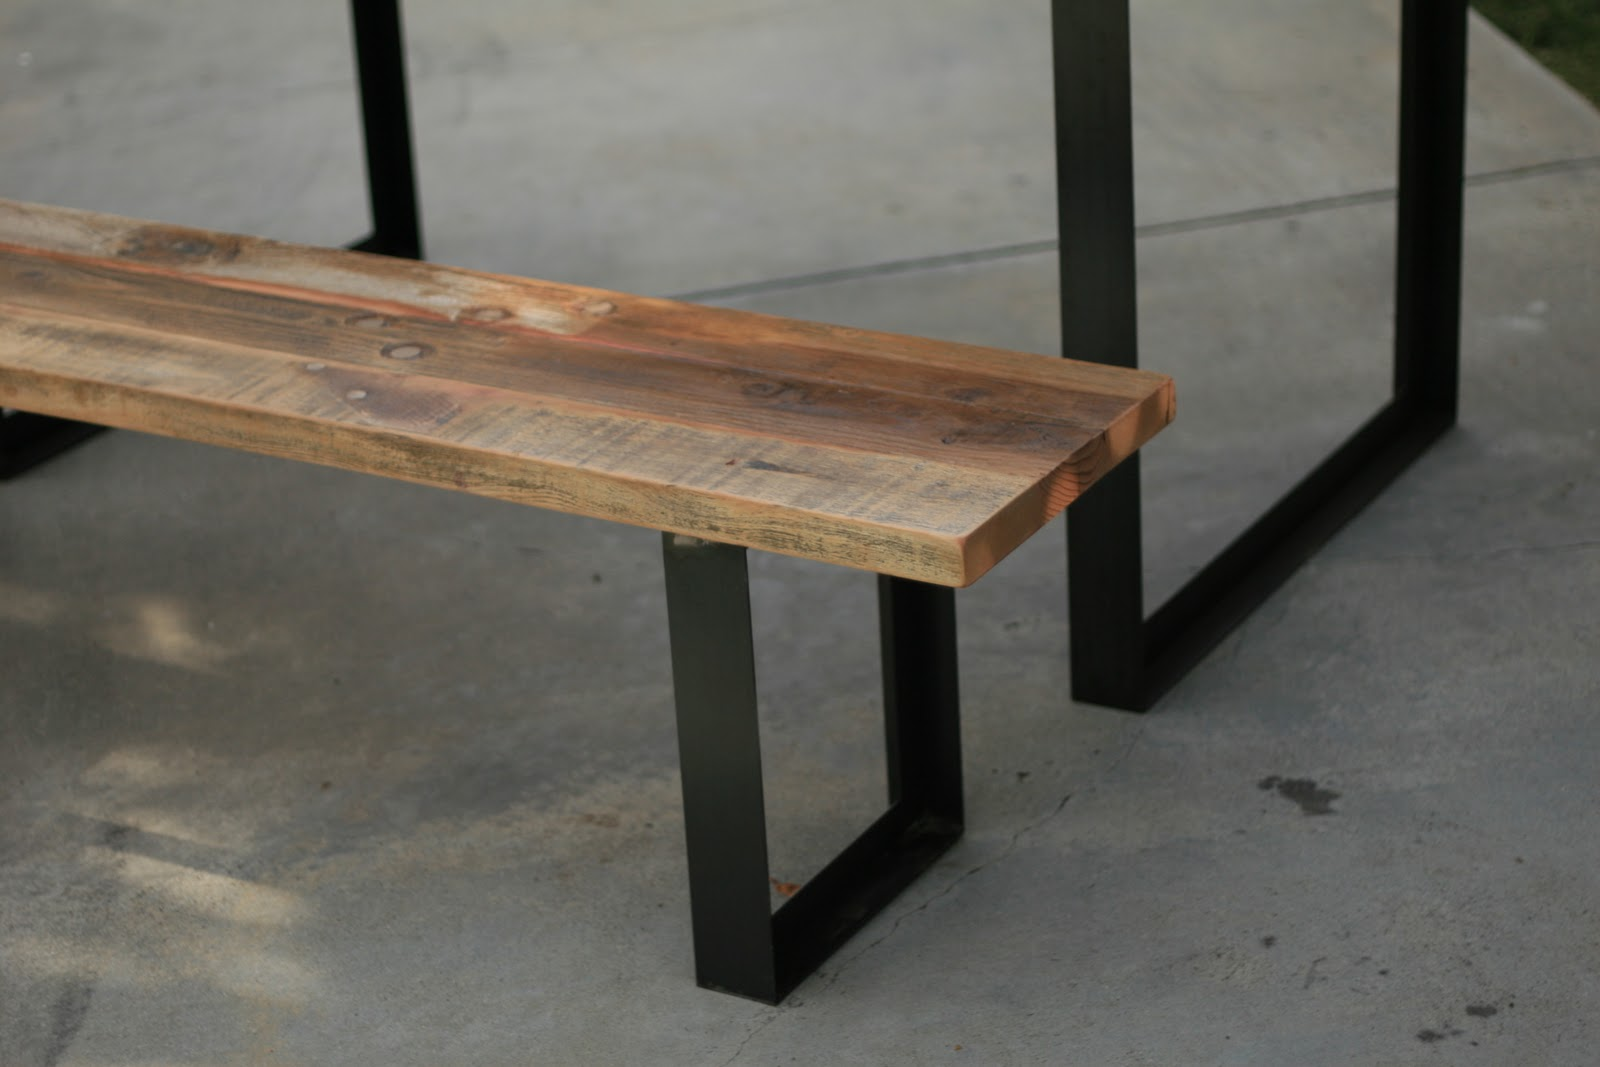 Arbor Exchange Reclaimed Wood Furniture Outdoor Table Bench With Metal Legs